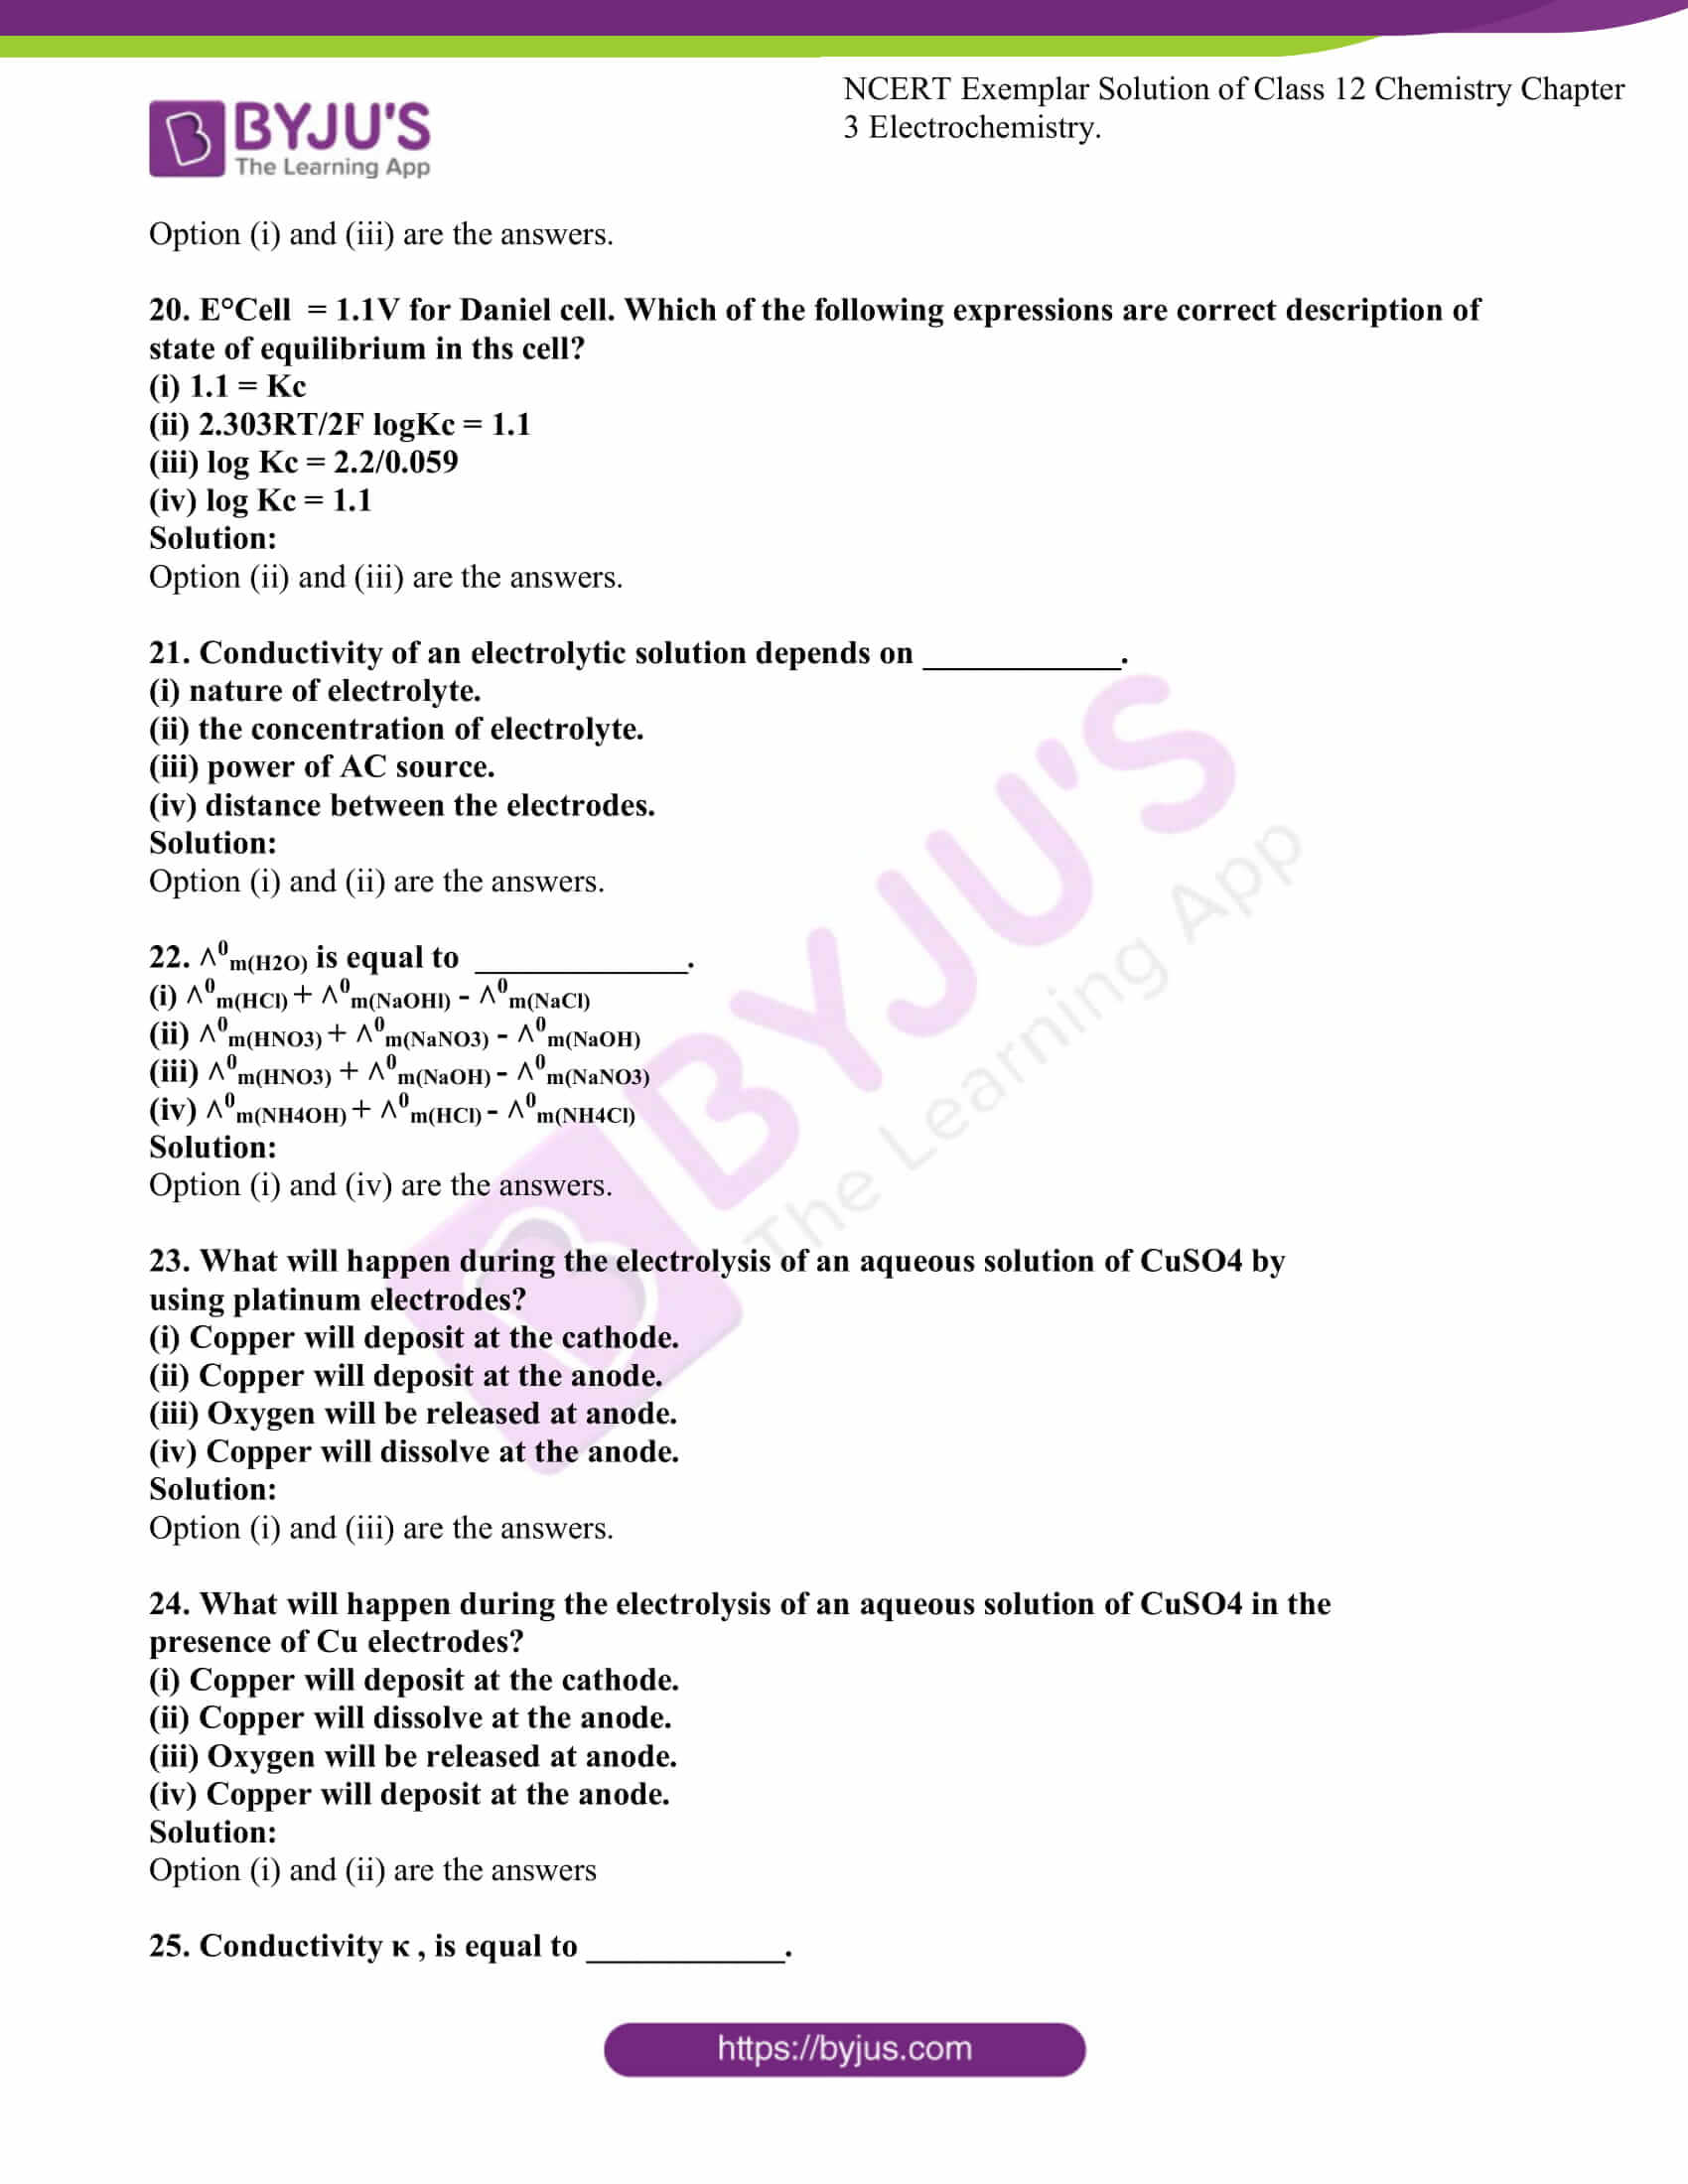 ncert exemplar solutions for class 12 chemistry chapter 3 electrochemistry 05